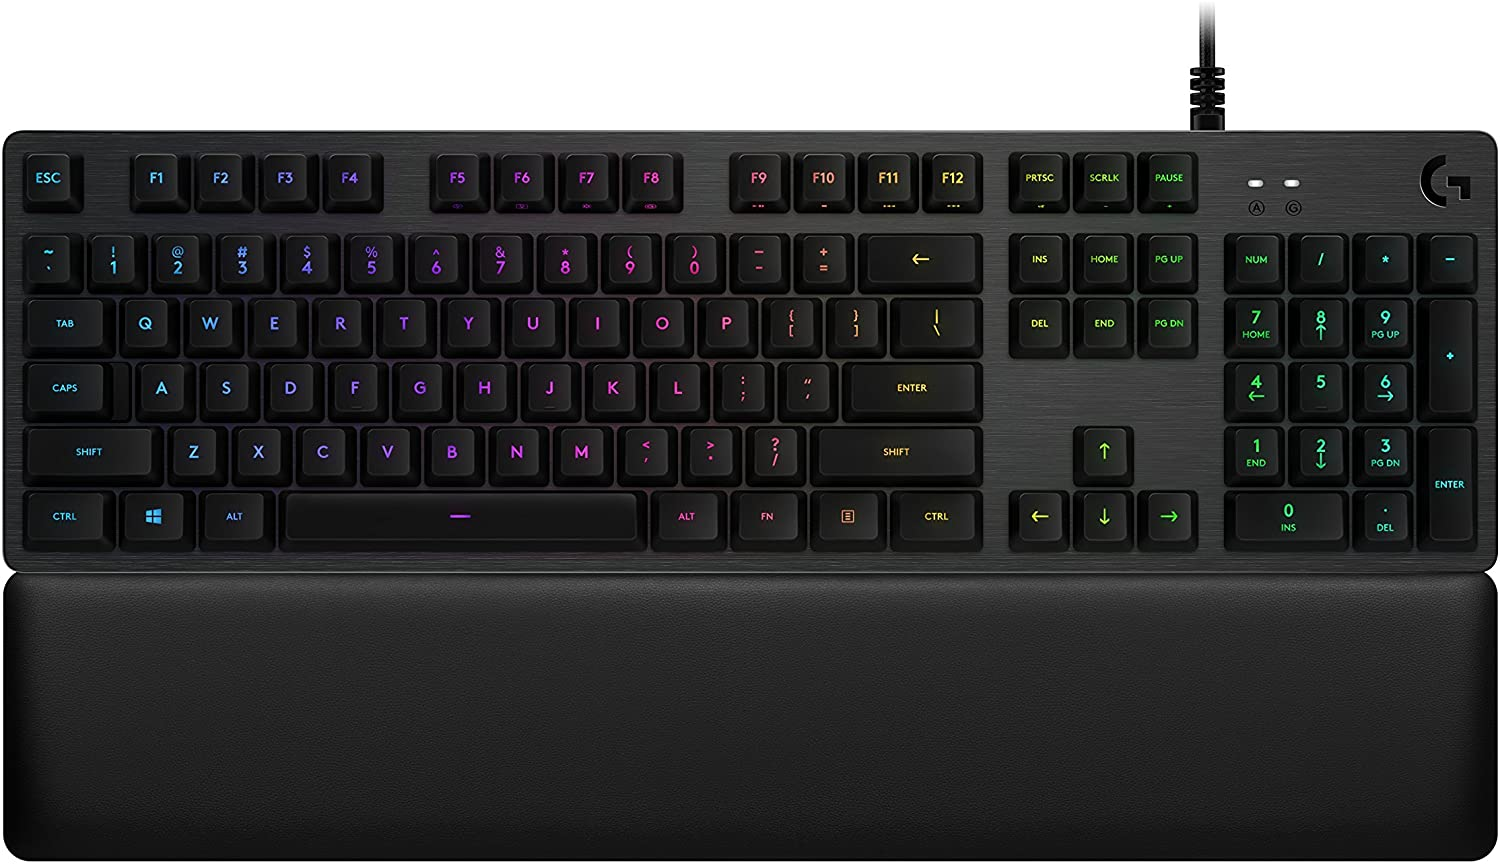 Logitech G513 RGB Backlit Mechanical Gaming Keyboard with Romer-G Linear Keyswitches (Carbon)